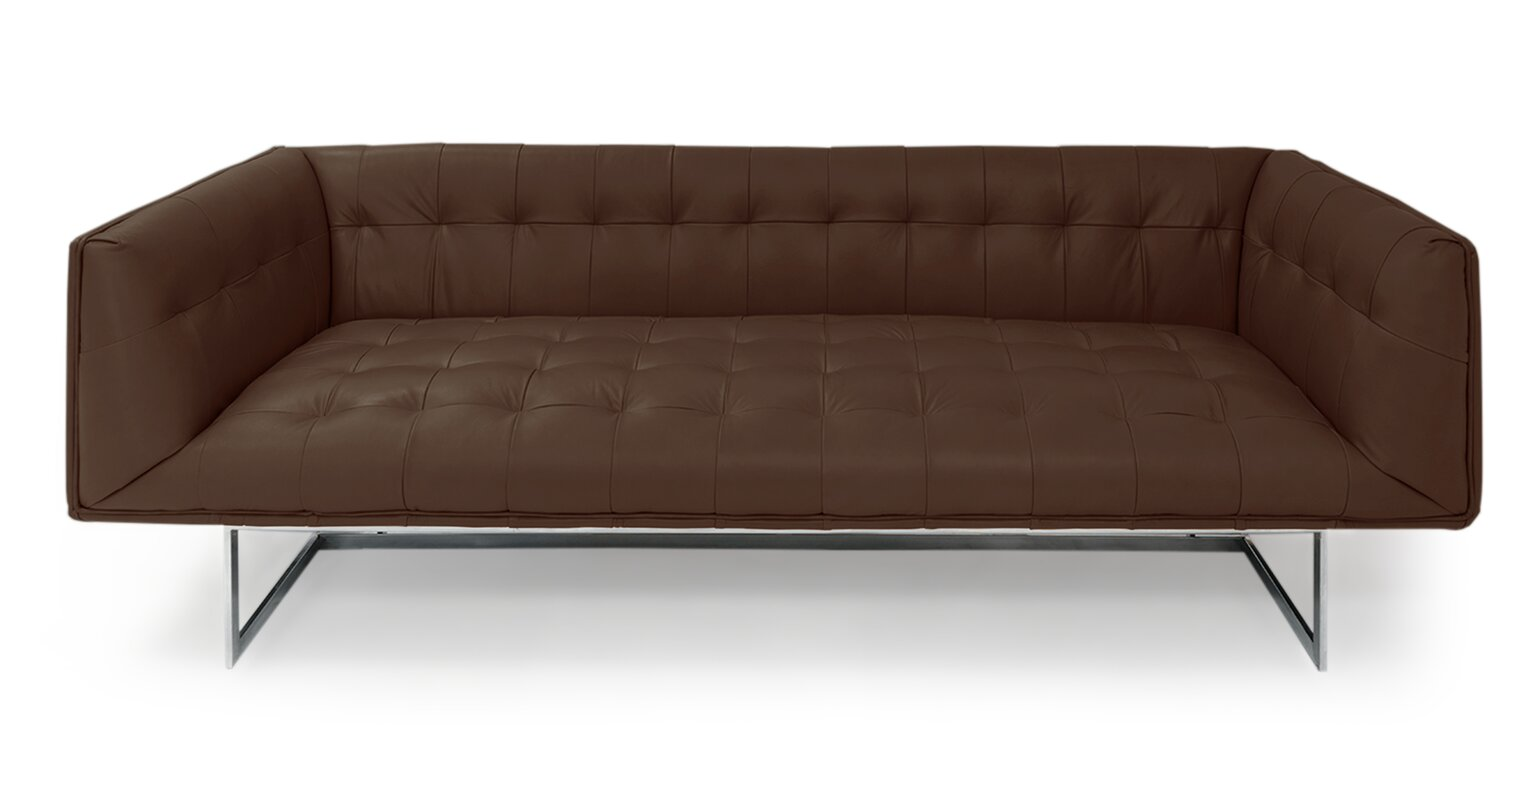 Stunning Chesterfield Sofa Holz Modern Images - Ideas & Design ...